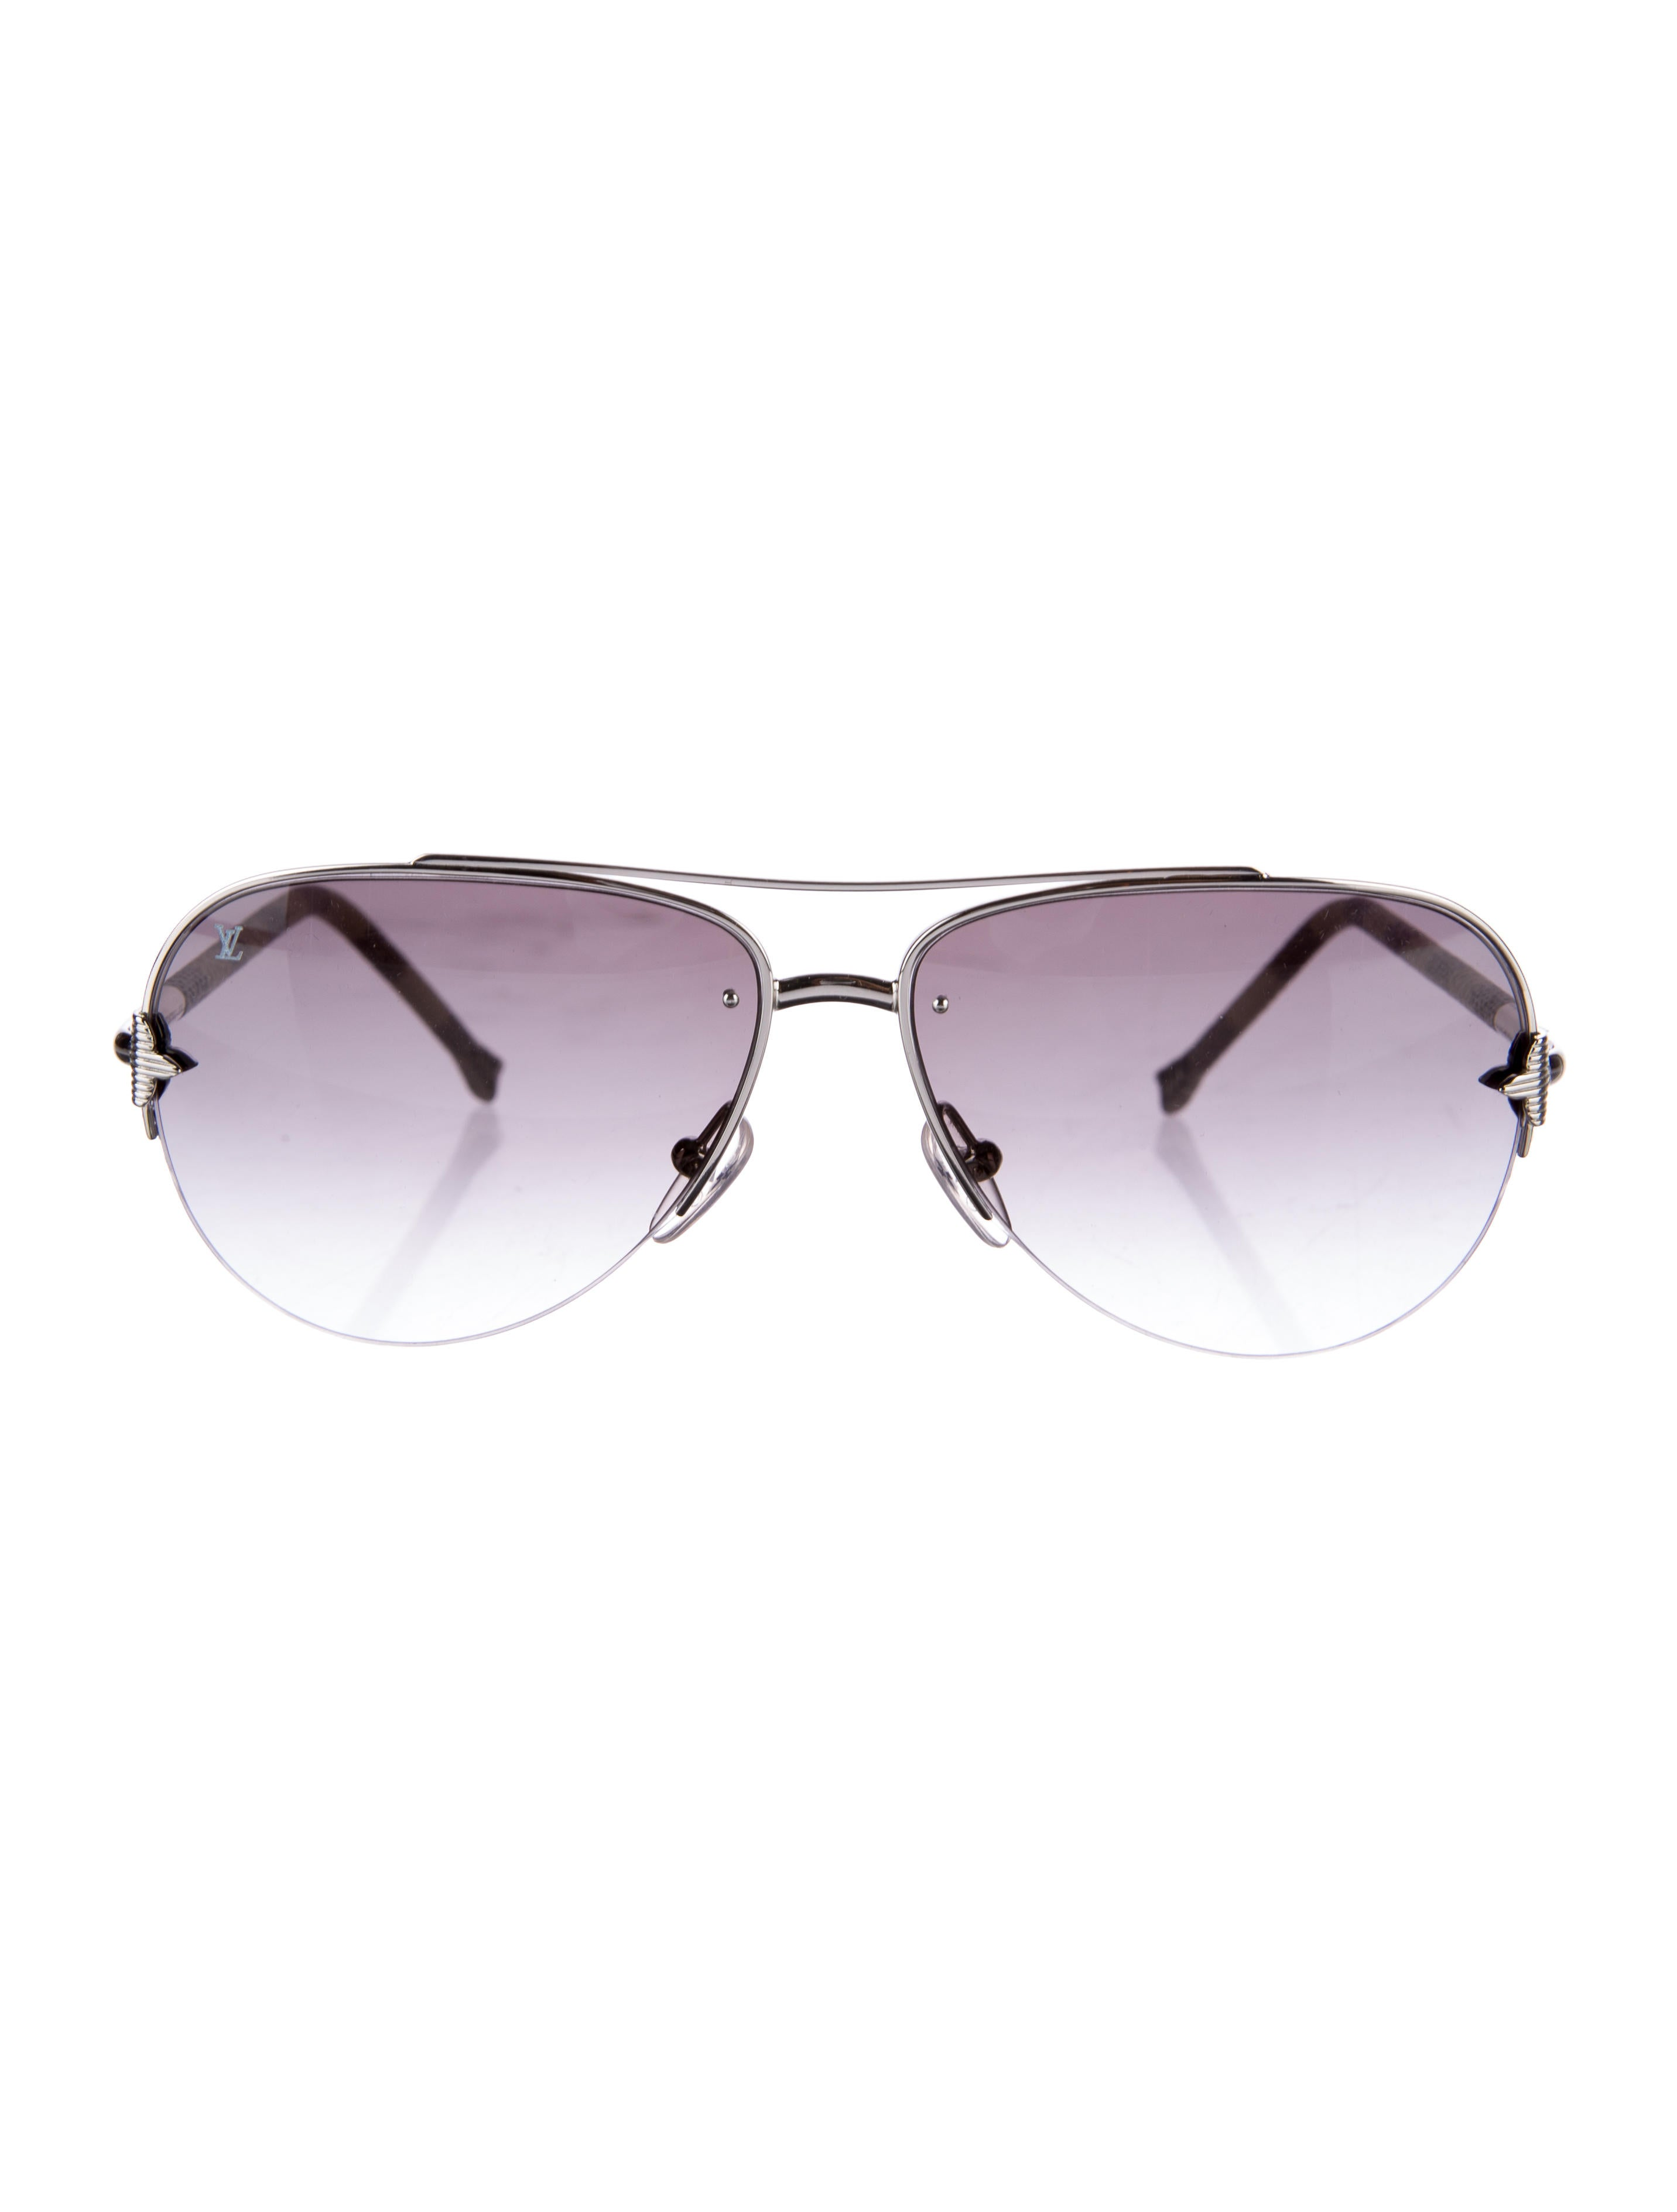 201925aaaa82f Louis Vuitton Petite Viola Pilote Sunglasses - Accessories ...